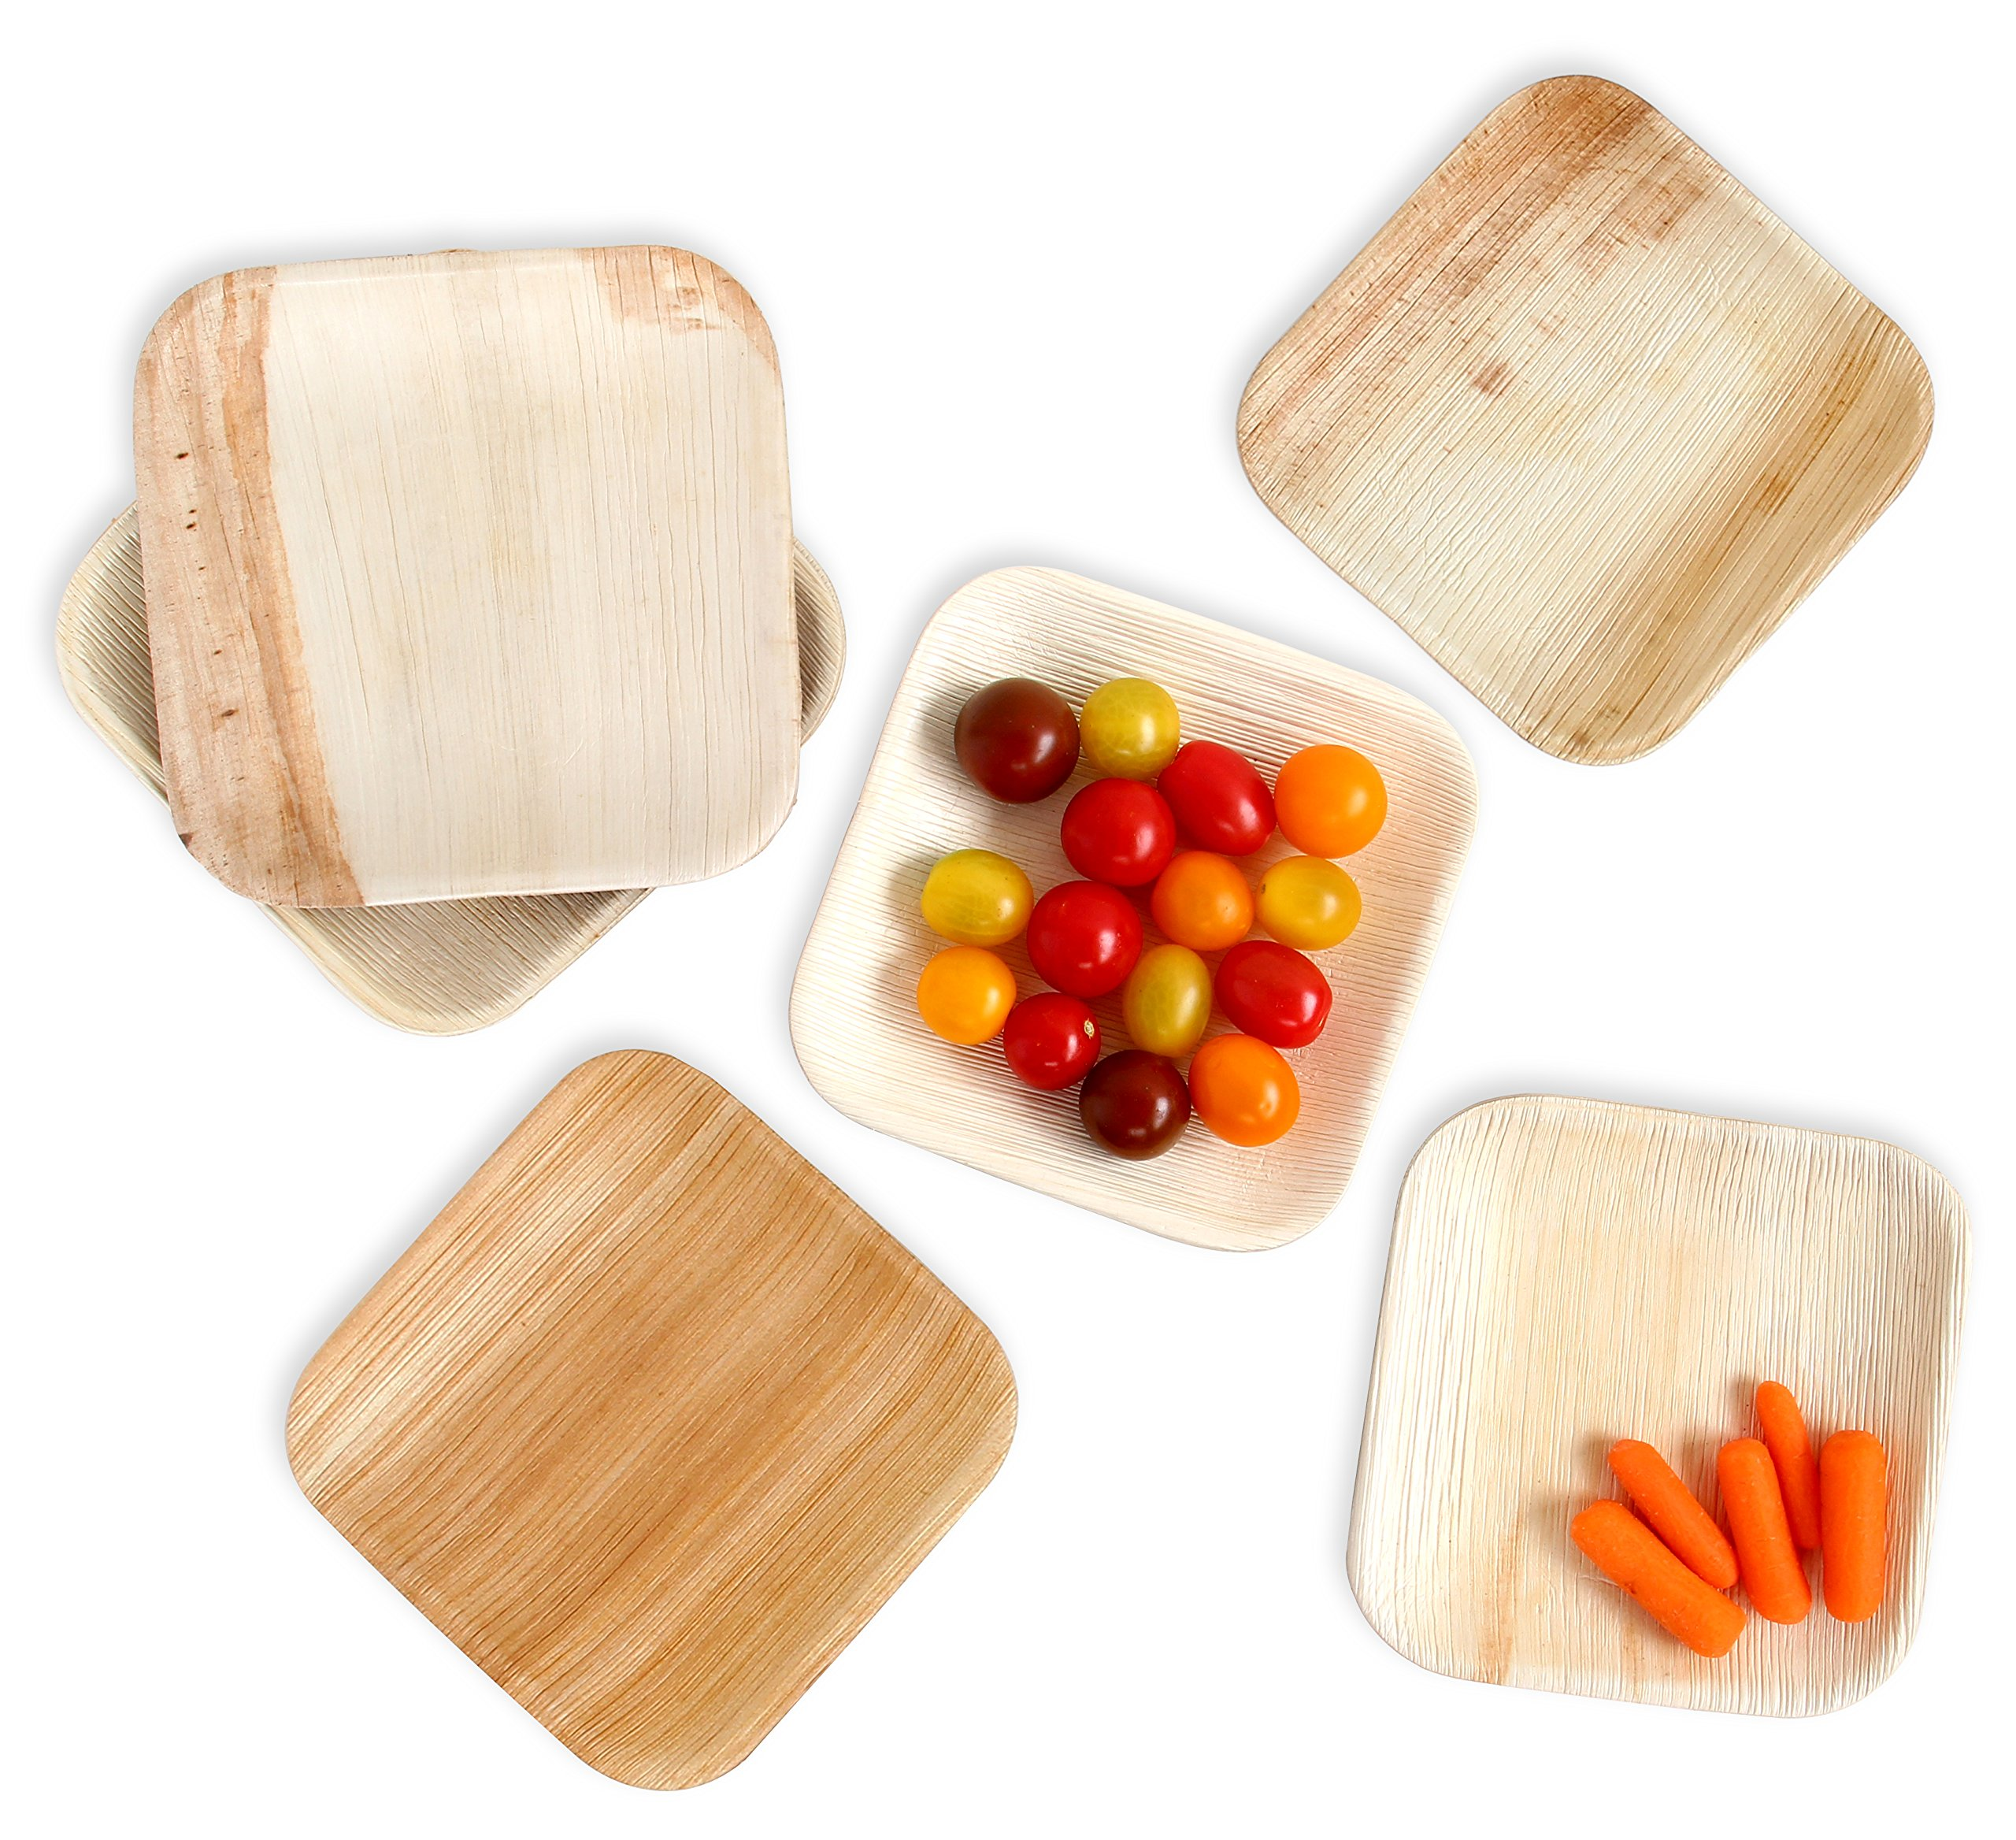 Leafily Palm Leaf Plates - 6 inch Square - Heavy Duty - Elegant - 100% Compostable - Better than Bamboo or Wood - Disposable - Biodegradable - Premium Party Plates - USDA Certified - 22 Count